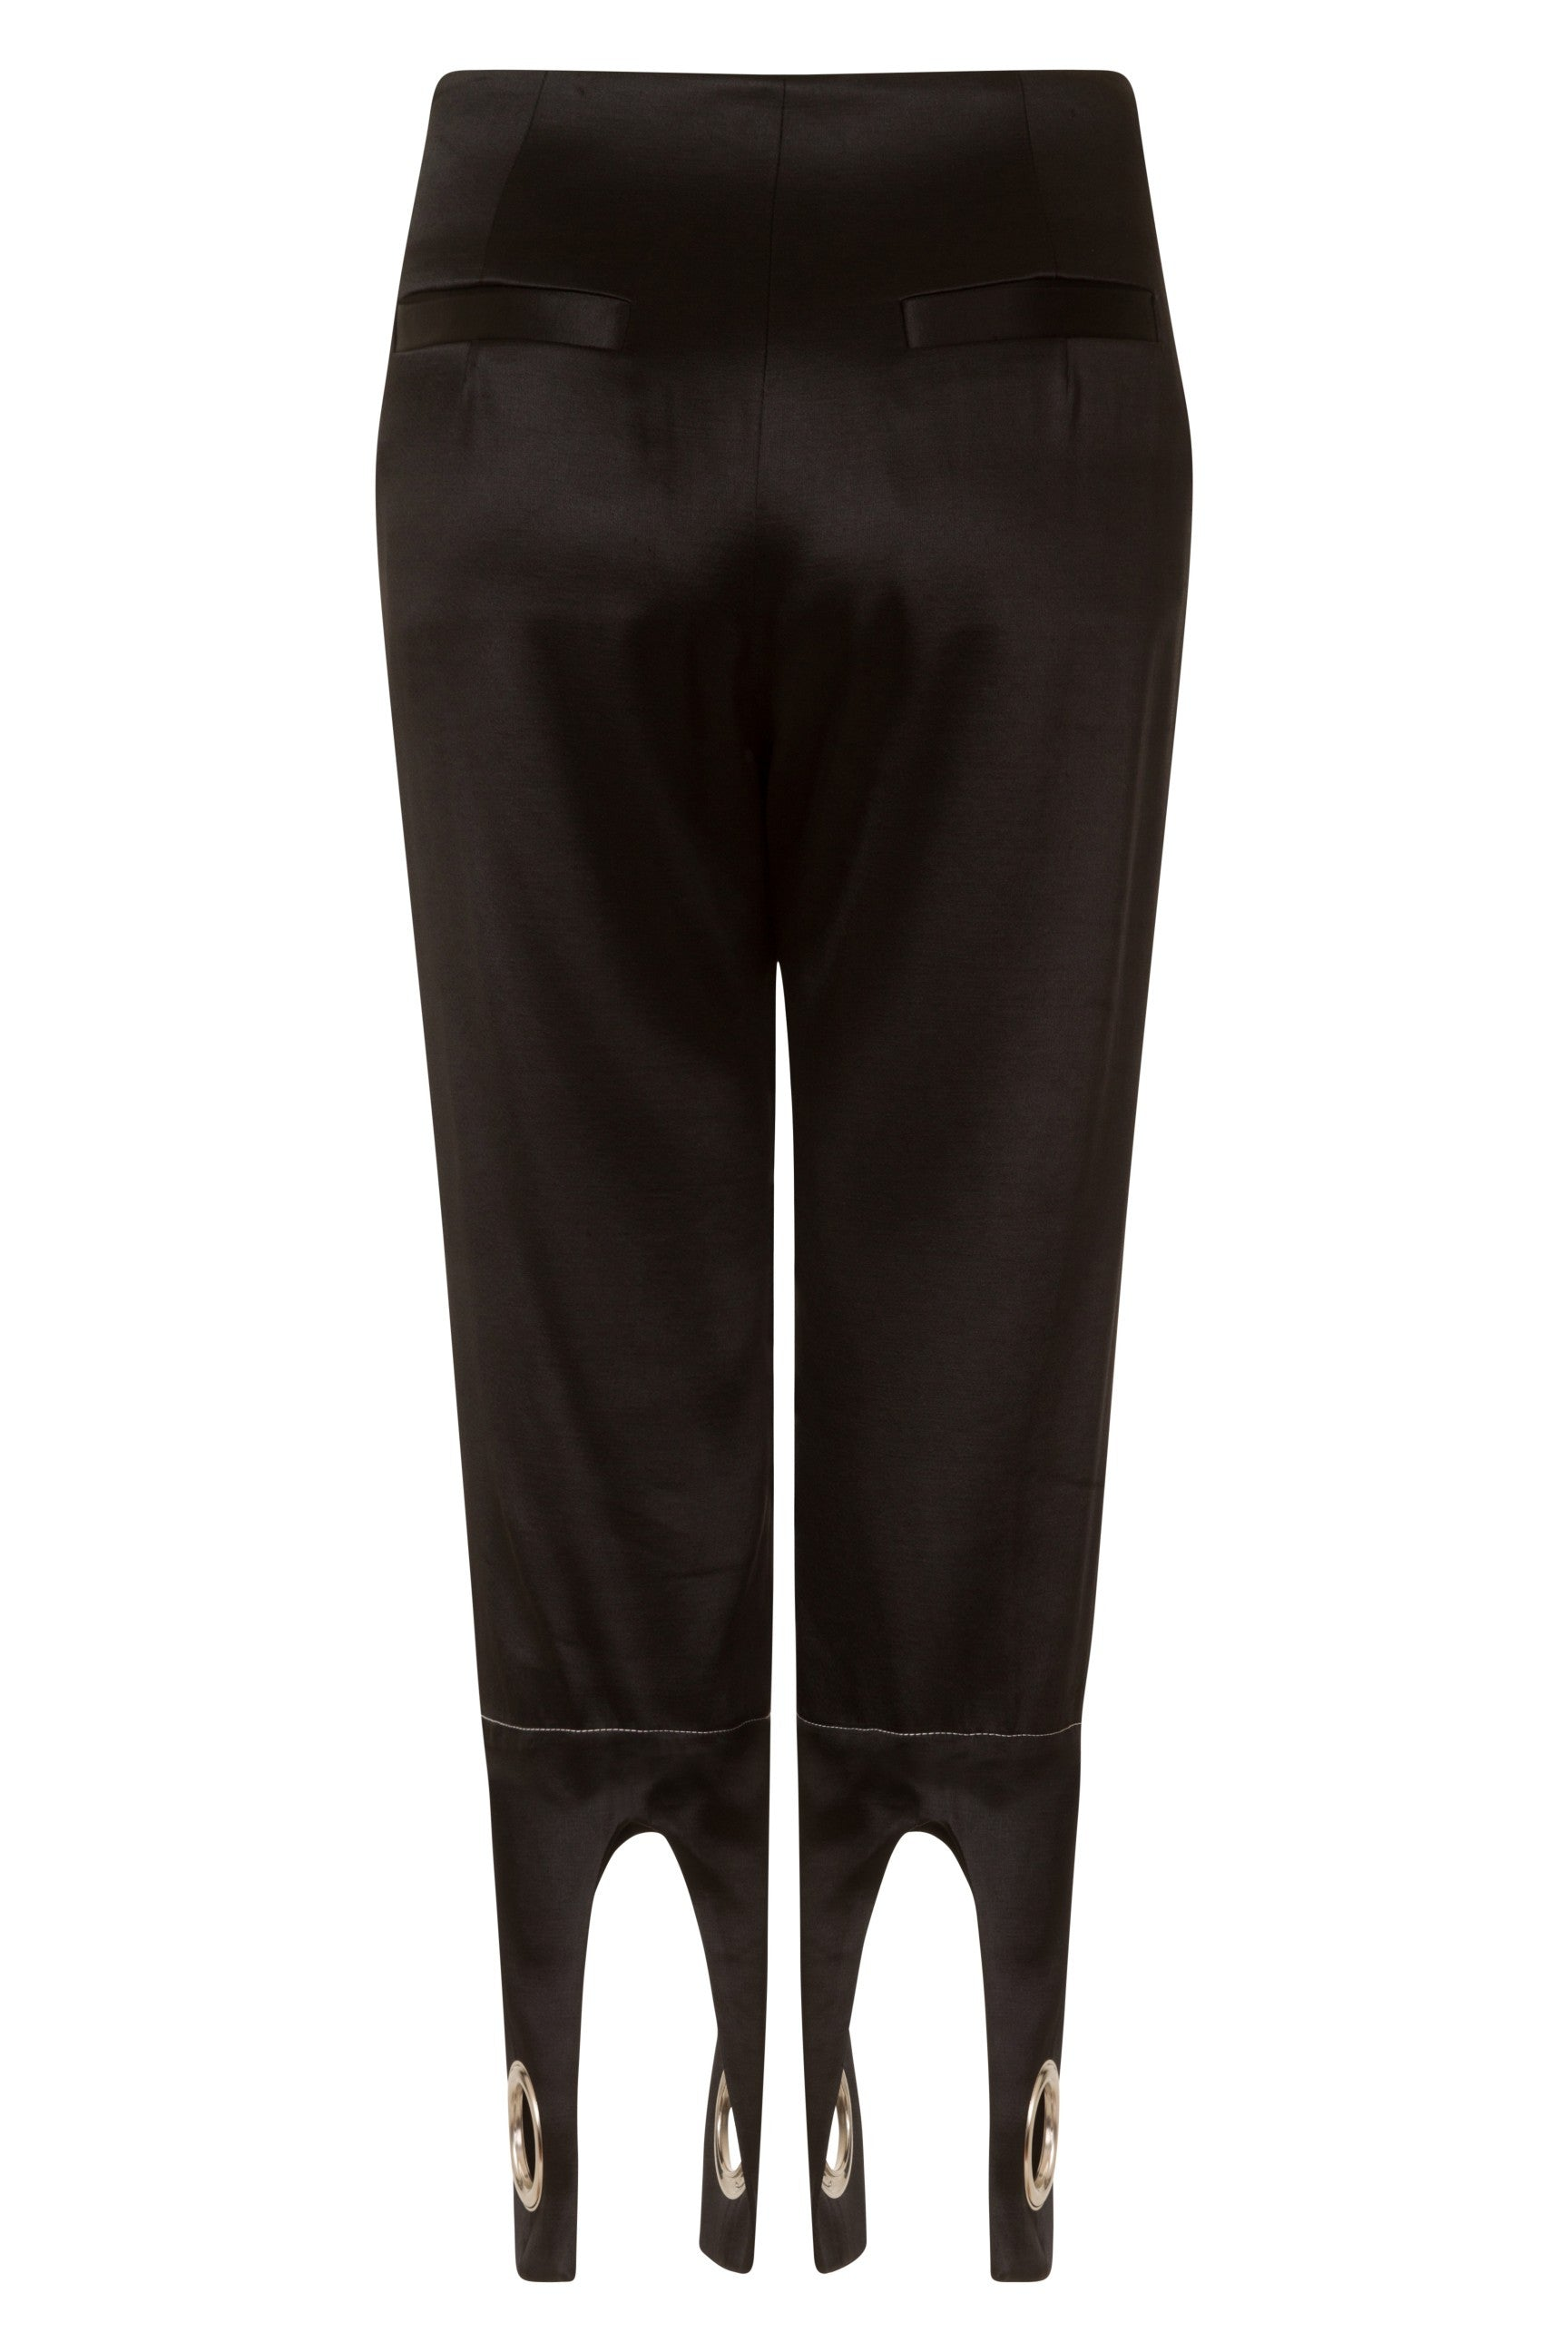 Horse Riding Trousers